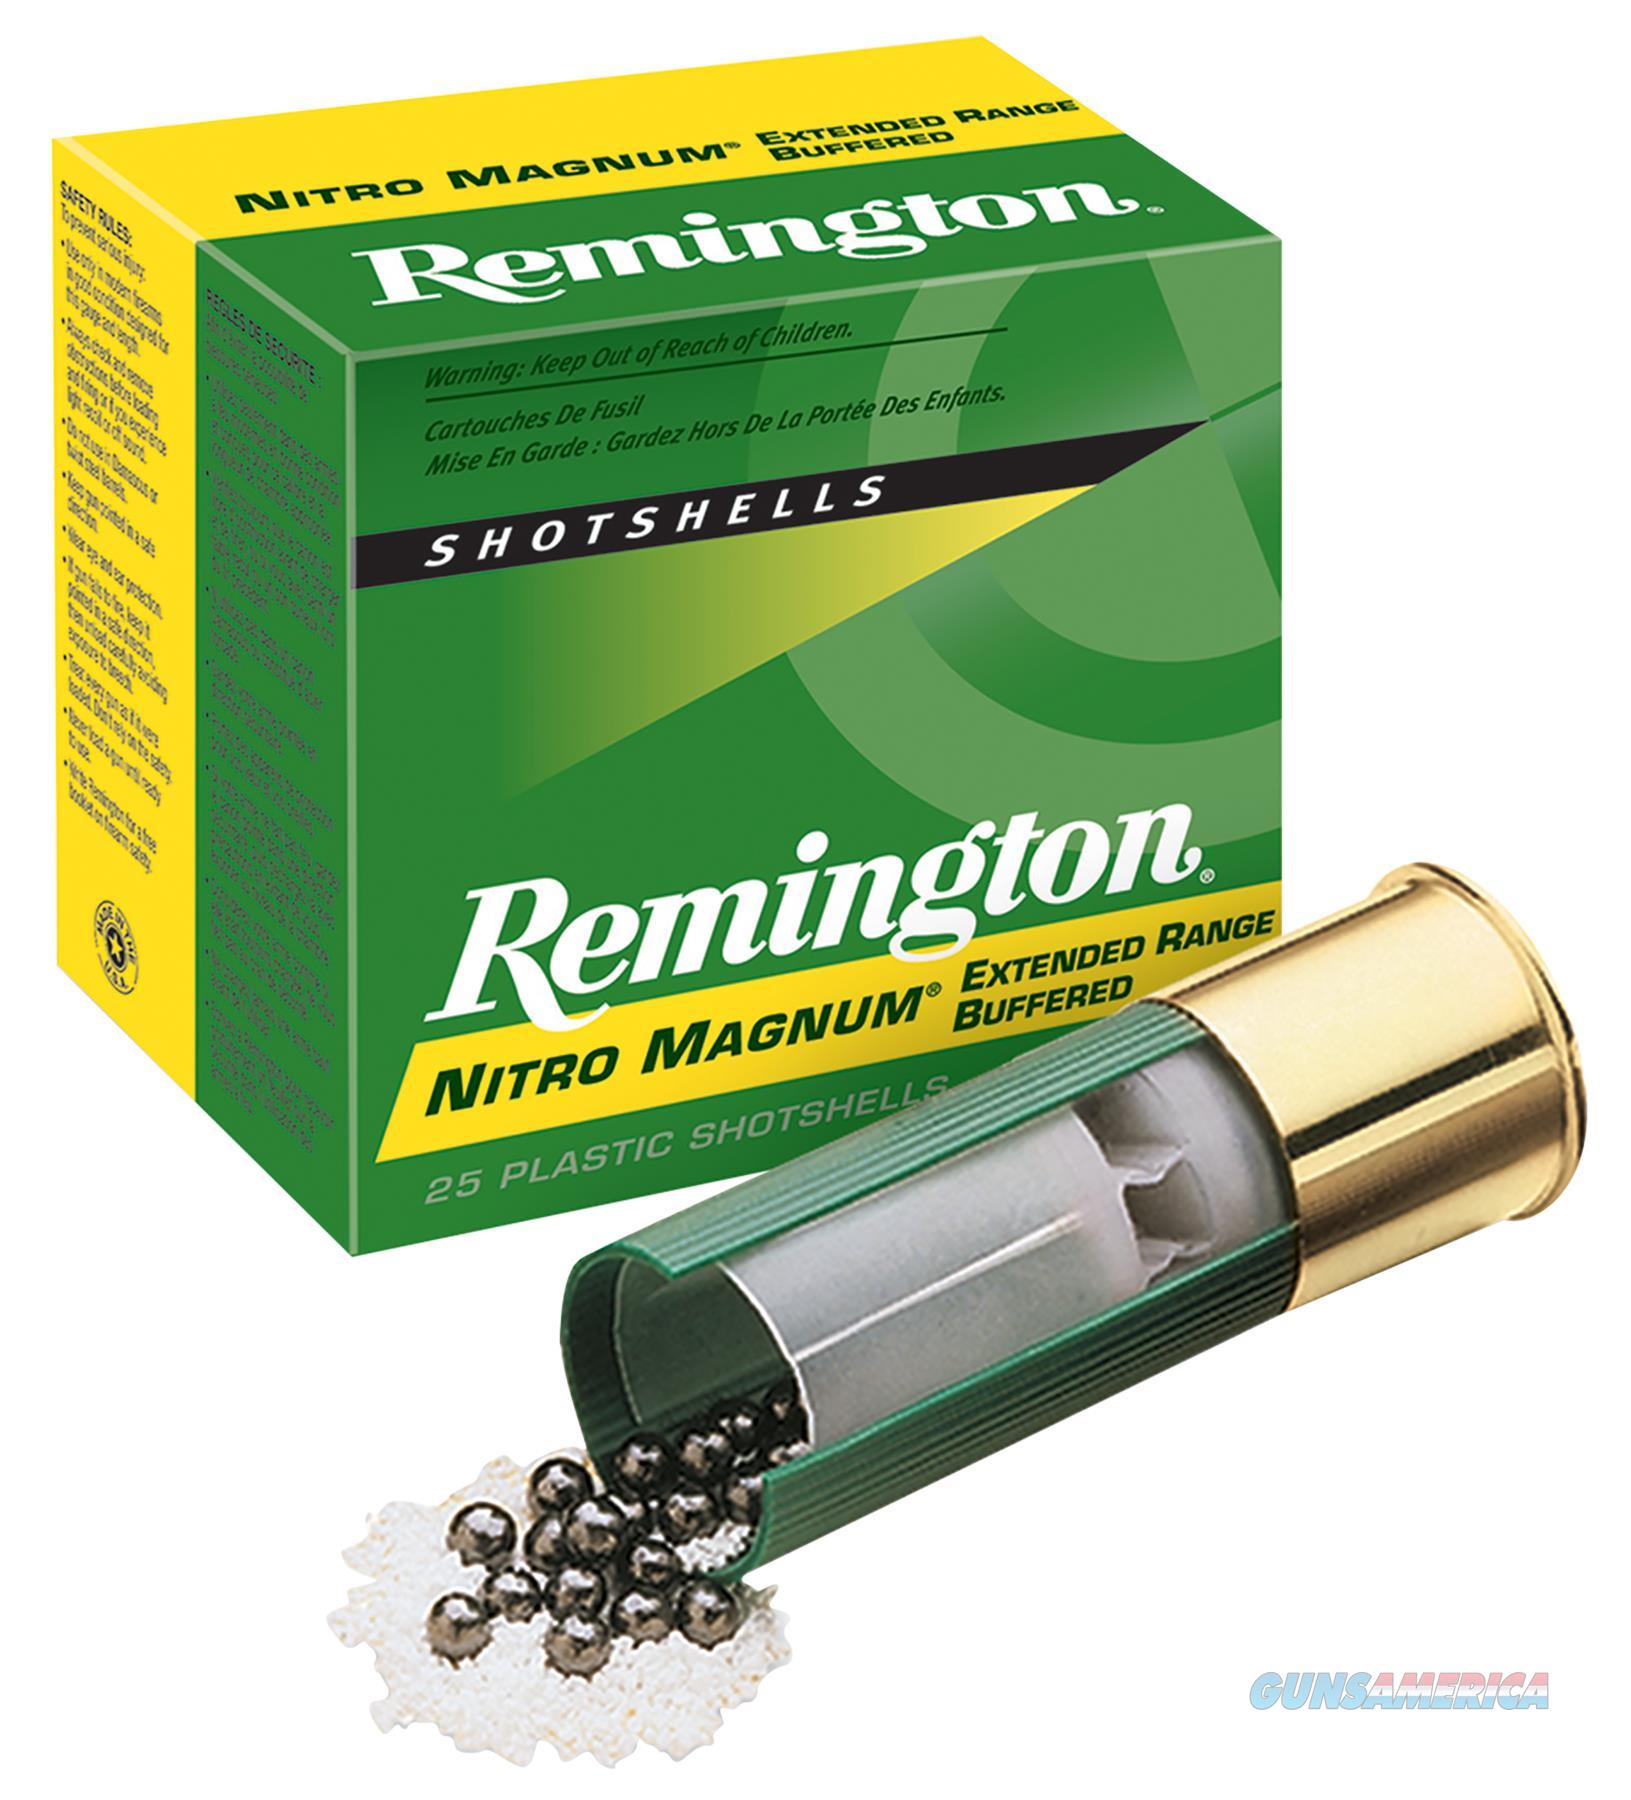 "Rem  Nm20s4 Nitro Mag Loads 20 Ga 2.75"" 1-1/8 Oz 4 Shot 25Box/10Case NM20S4  Non-Guns > Ammunition"